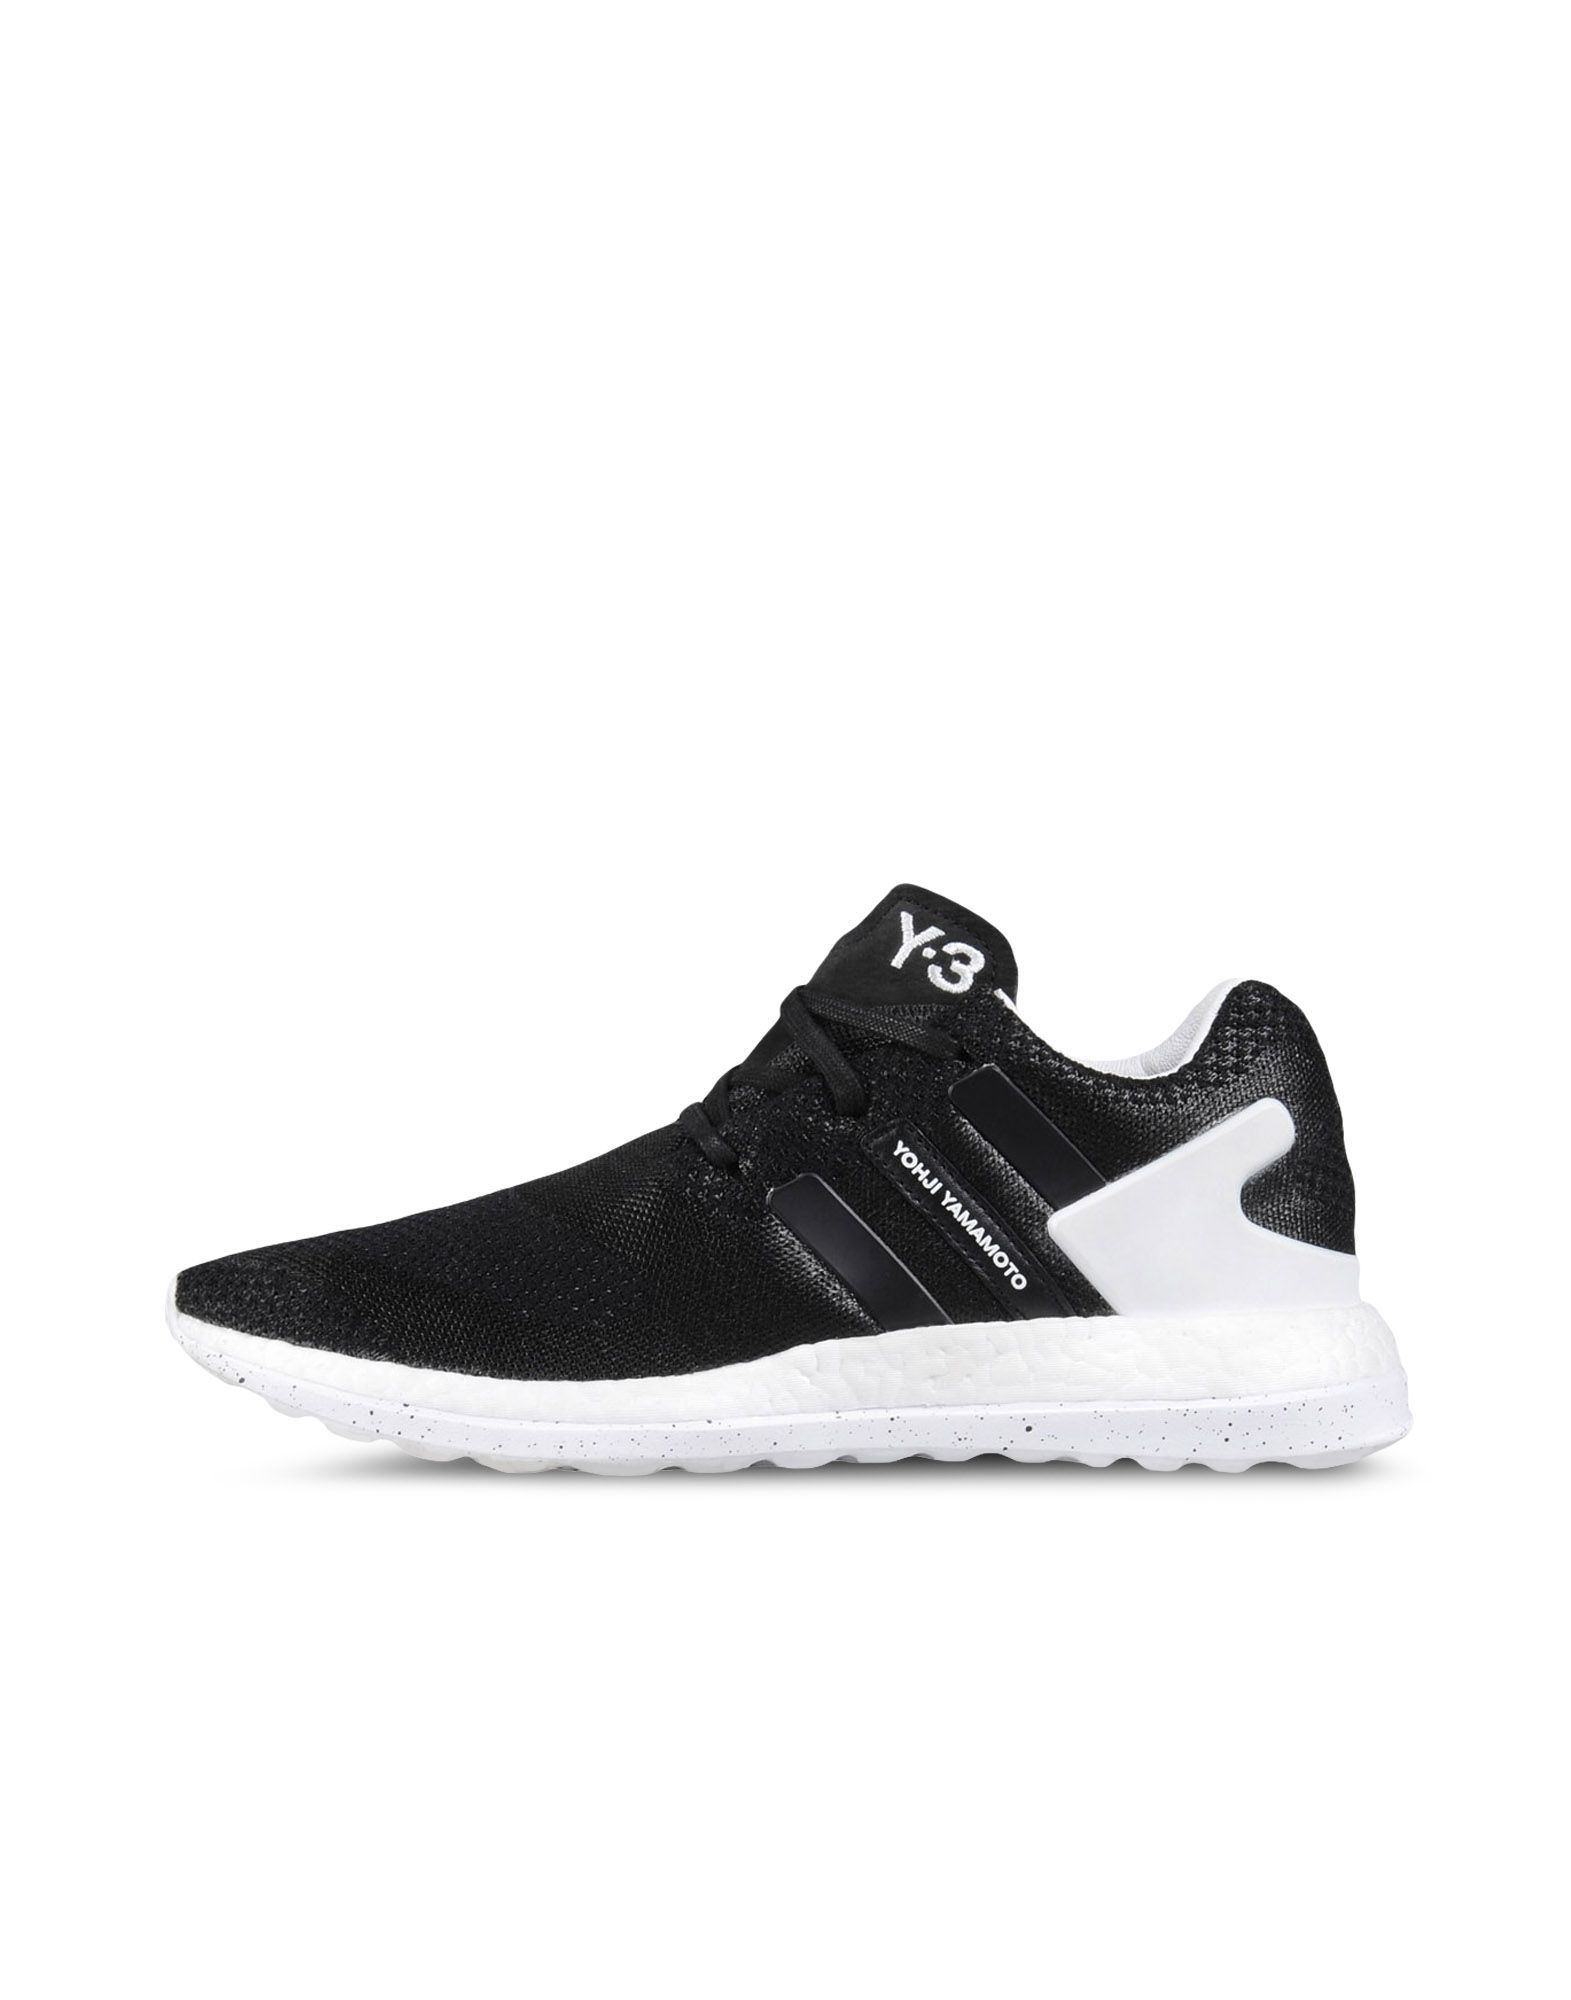 b31ffb372 Check out the Y 3 PURE BOOST ZG KNIT Sneakers for Men and order today on  the official Adidas online store.